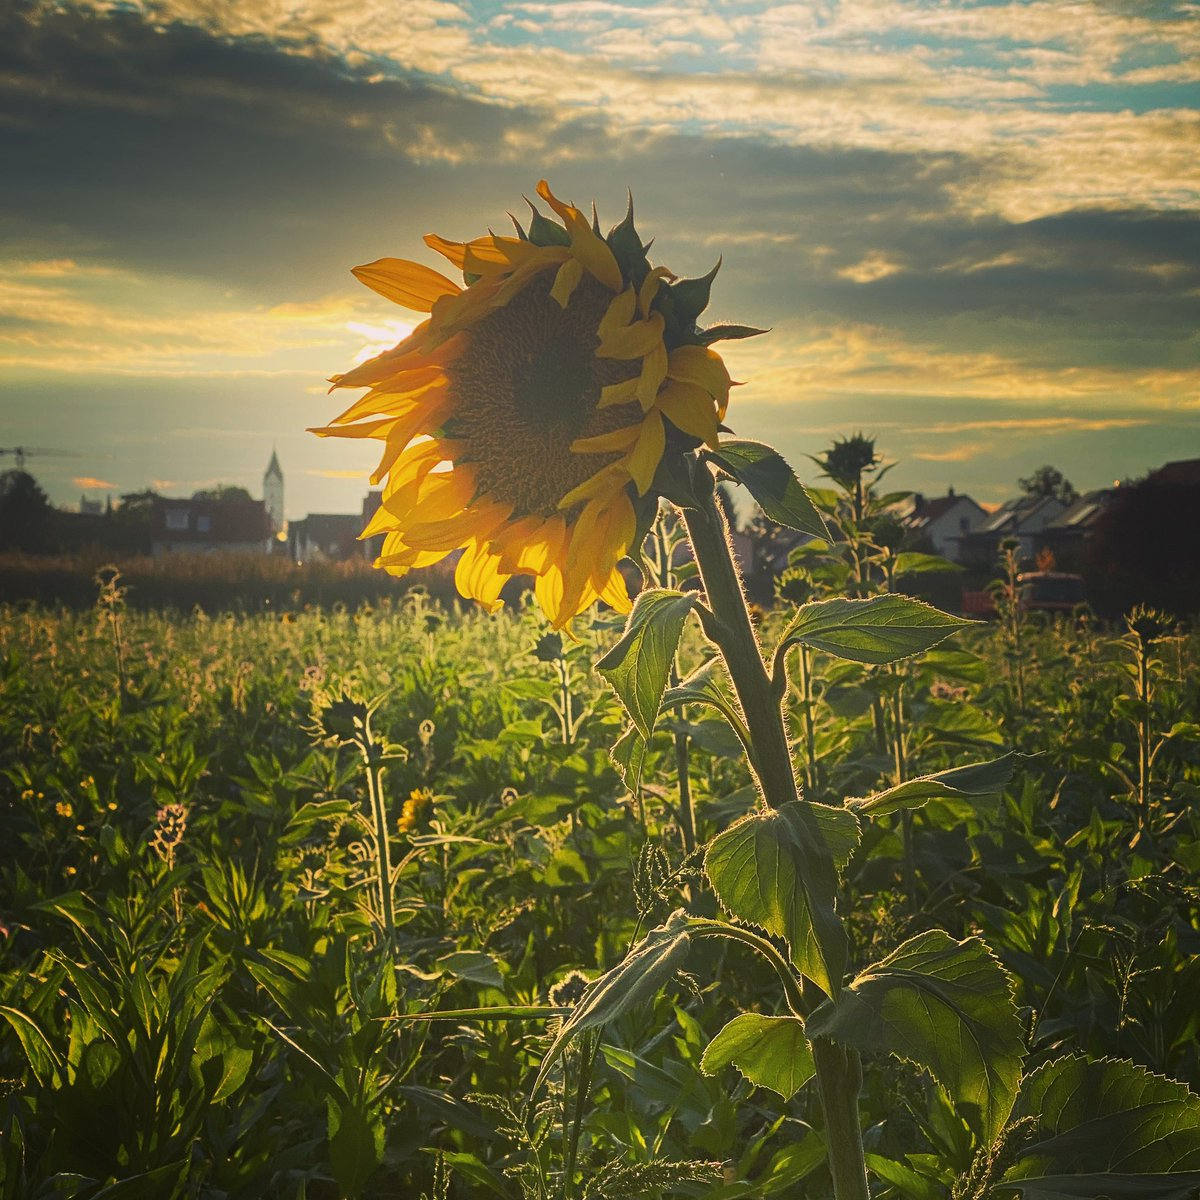 Autumnal sunflower 🌻 #SUNFLOWER #bavaria #canonphotography #lovinglife #Autumn #sunset https://t.co/iUWfQBrZIp